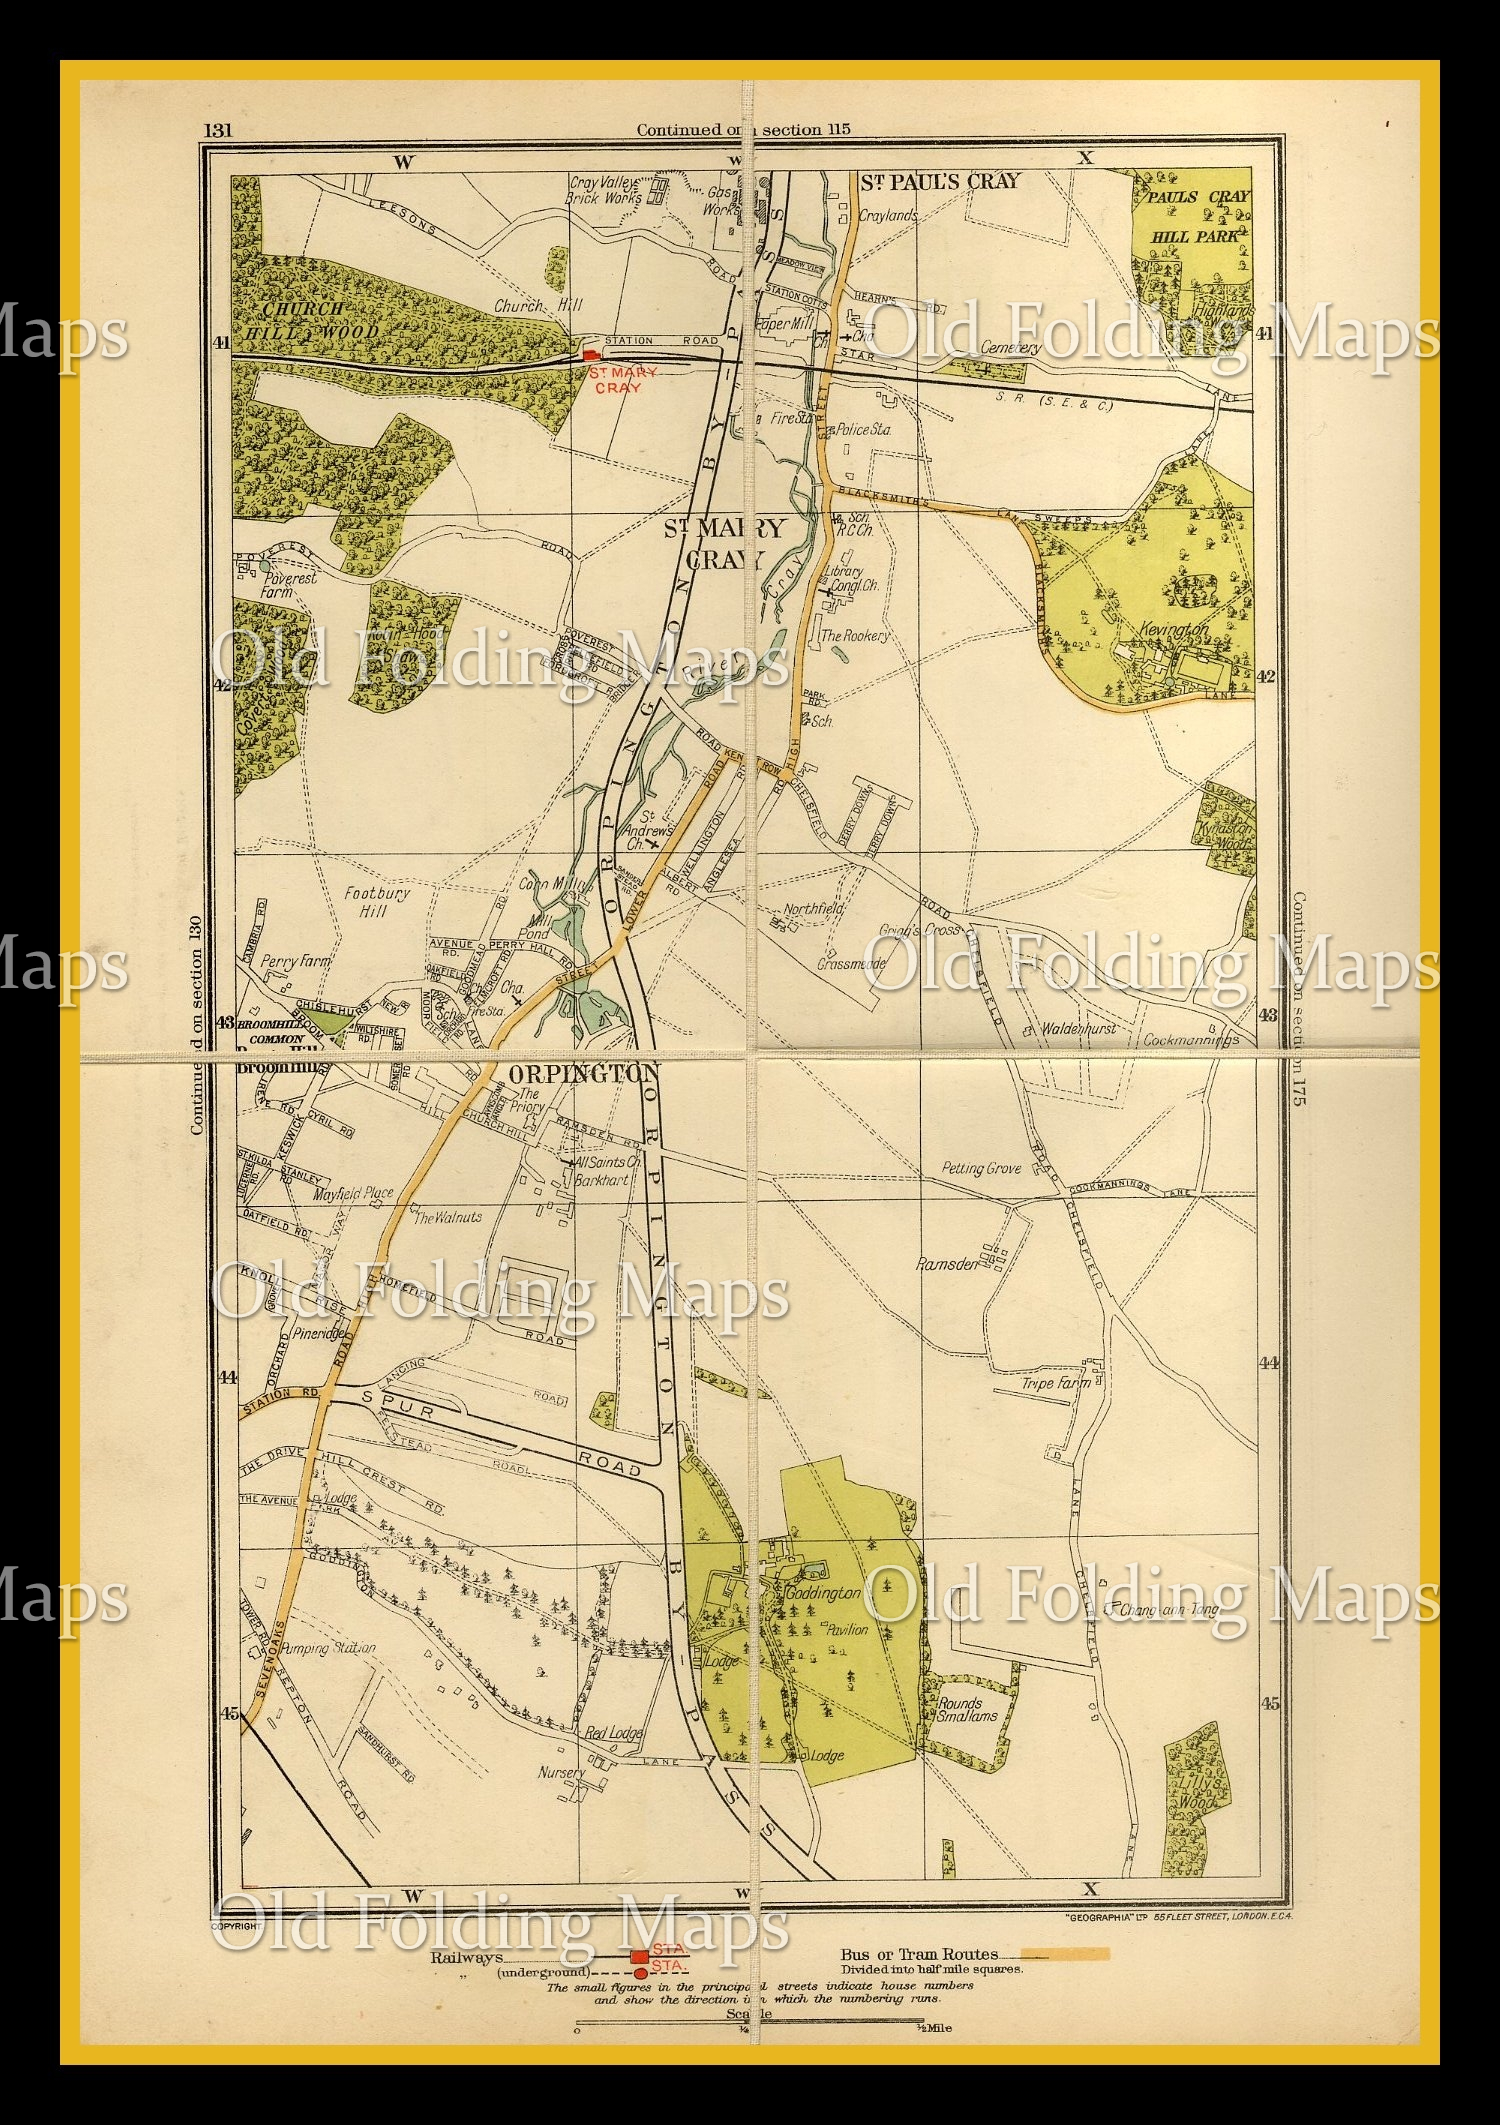 Old London Map of St Mary Cray & Orpington circa 1930's